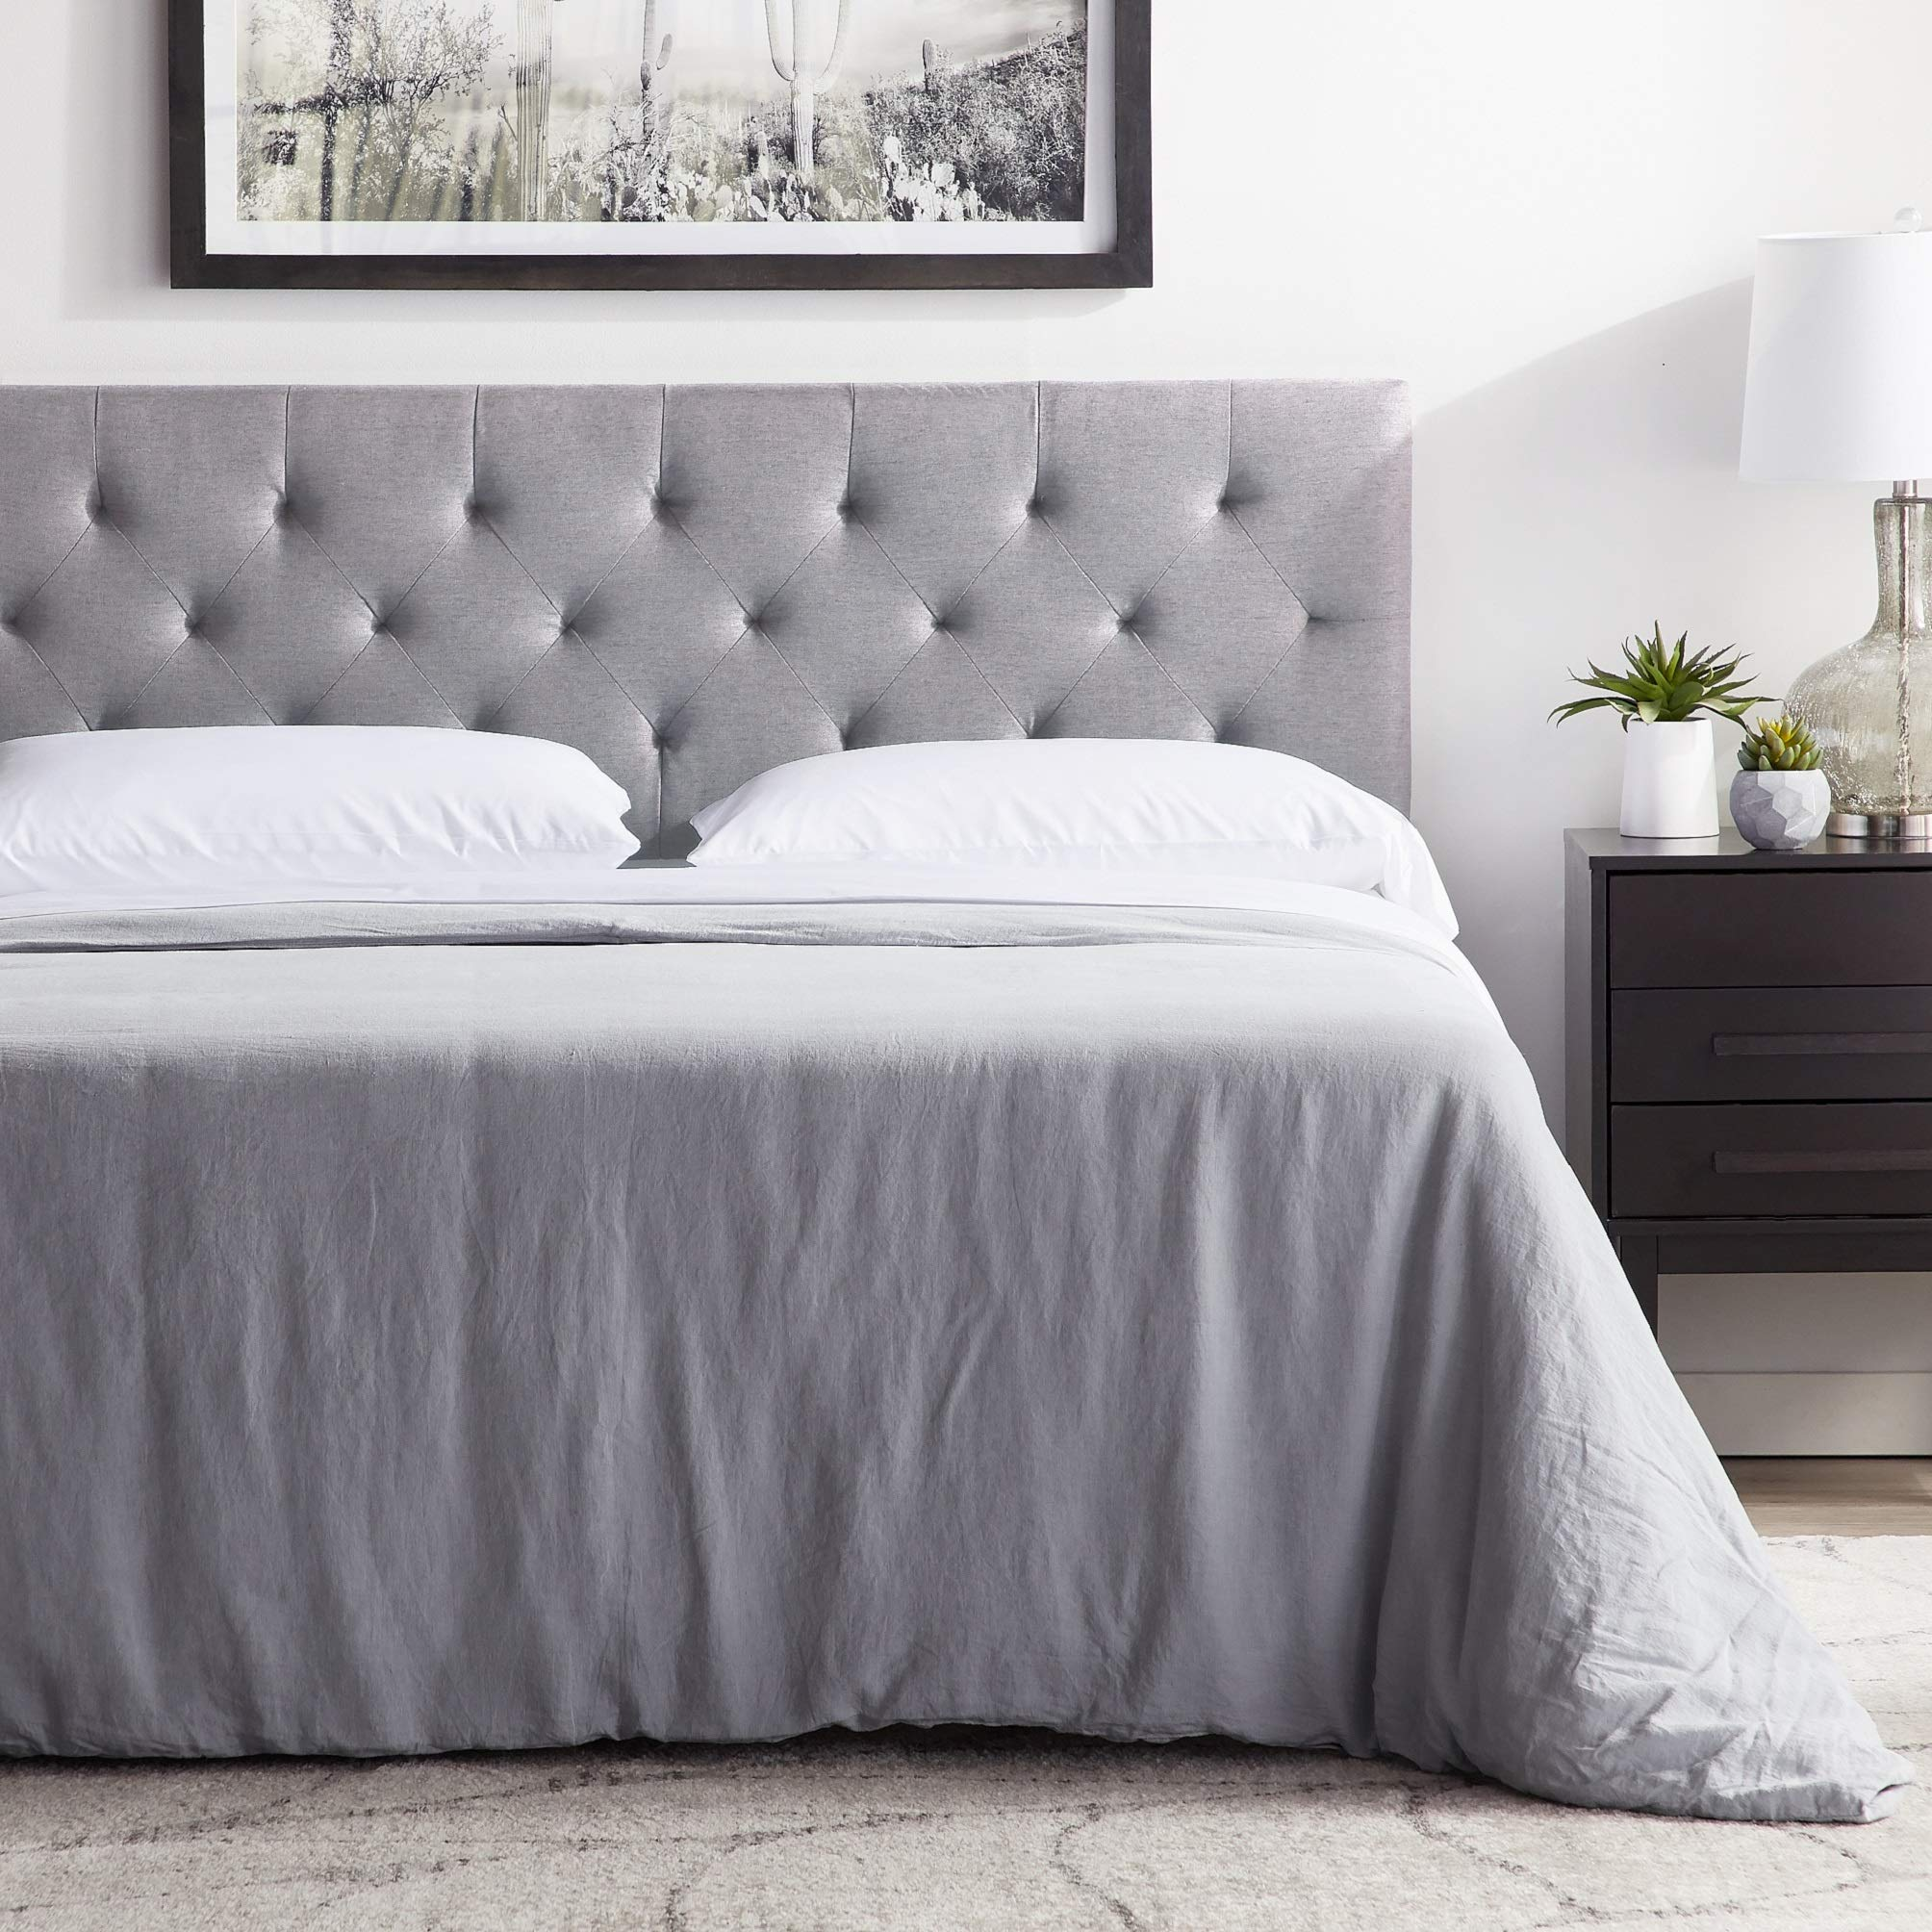 LUCID Mid-Rise Upholstered Headboard - Adjustable Height from 34'' to 46'' Full - Stone by LUCID